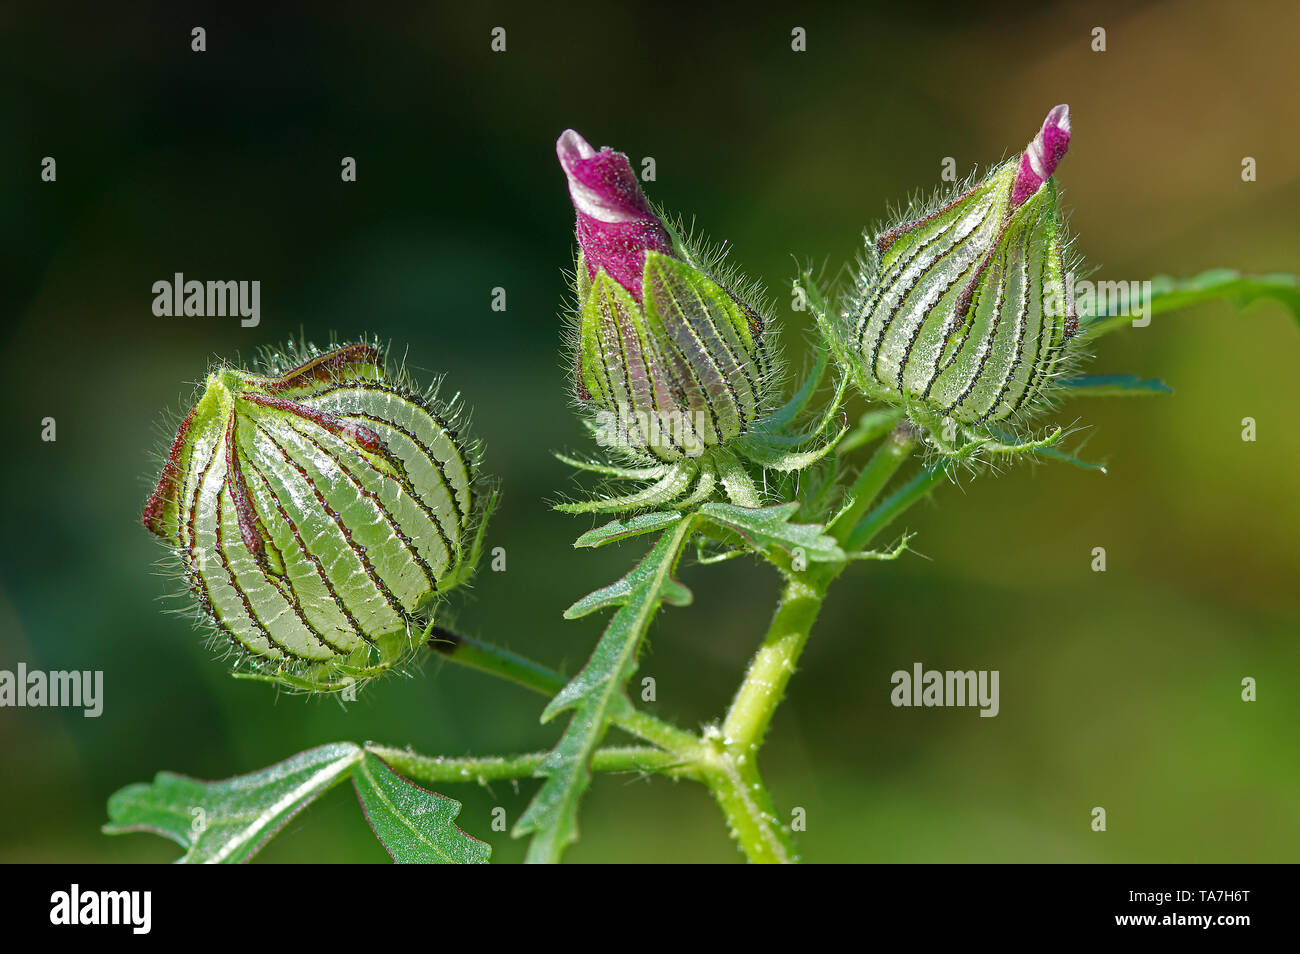 Cut-leaved Mallow, Hollyhock Mallow (Malva alcea), two flower buds and fruit (left). Germany Stock Photo